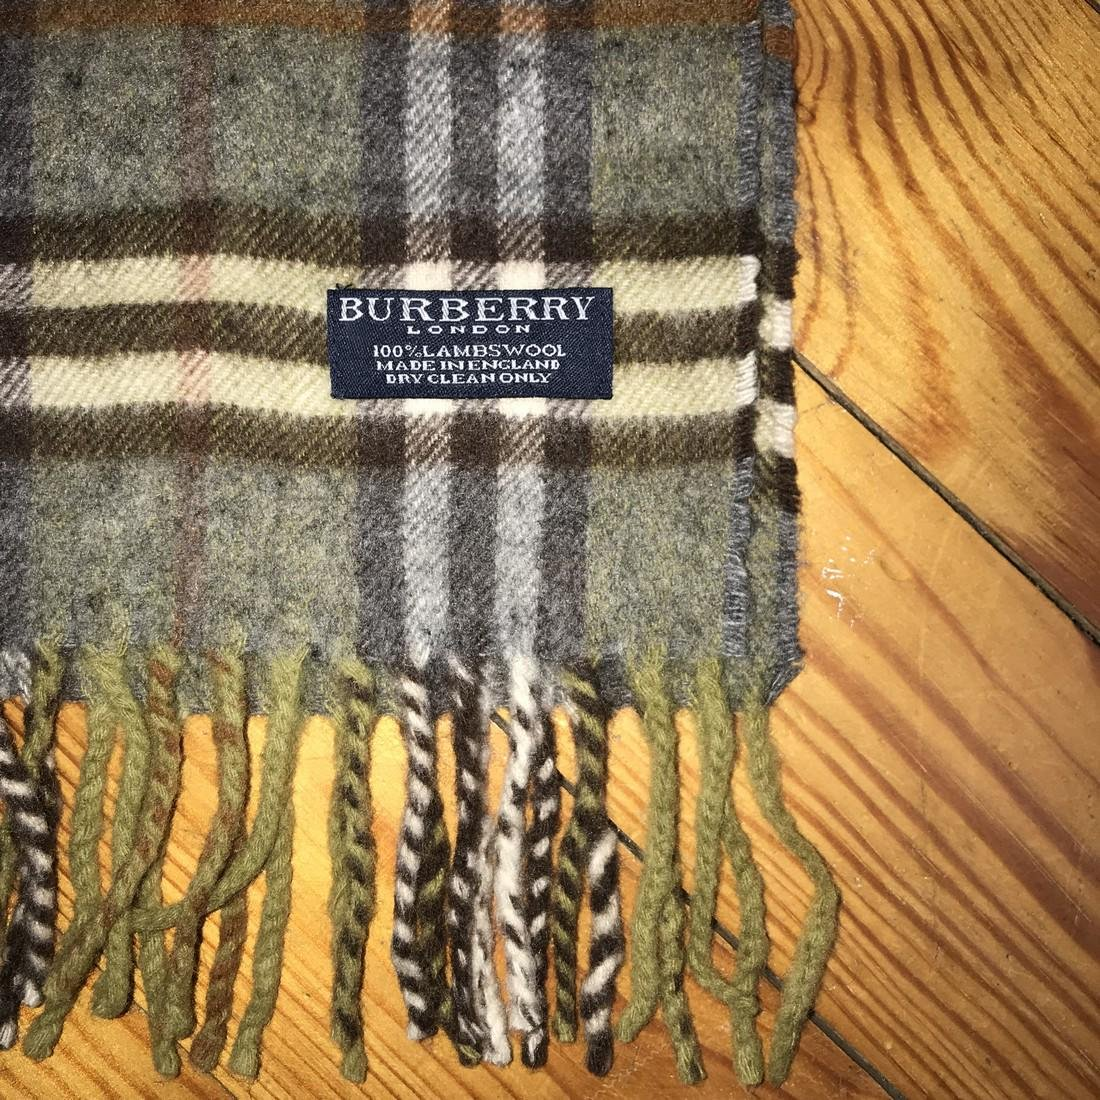 Burberry 100% Lambswool Scarf - 5